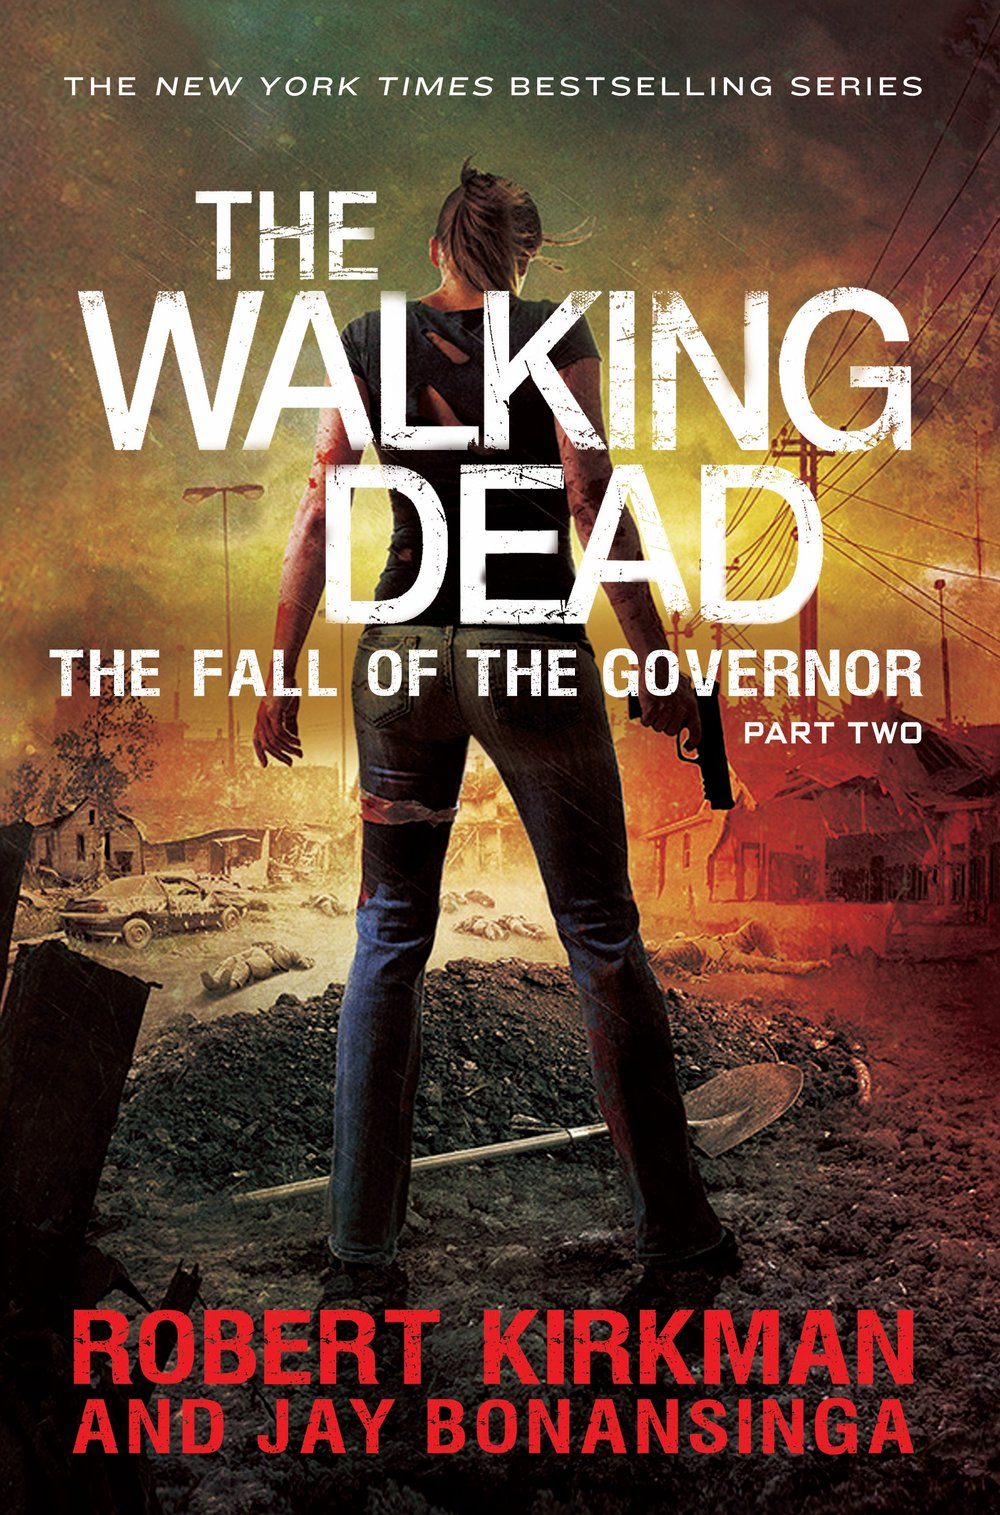 9781447266822The Walking Dead The Fall of the Governor Part Two.jpg